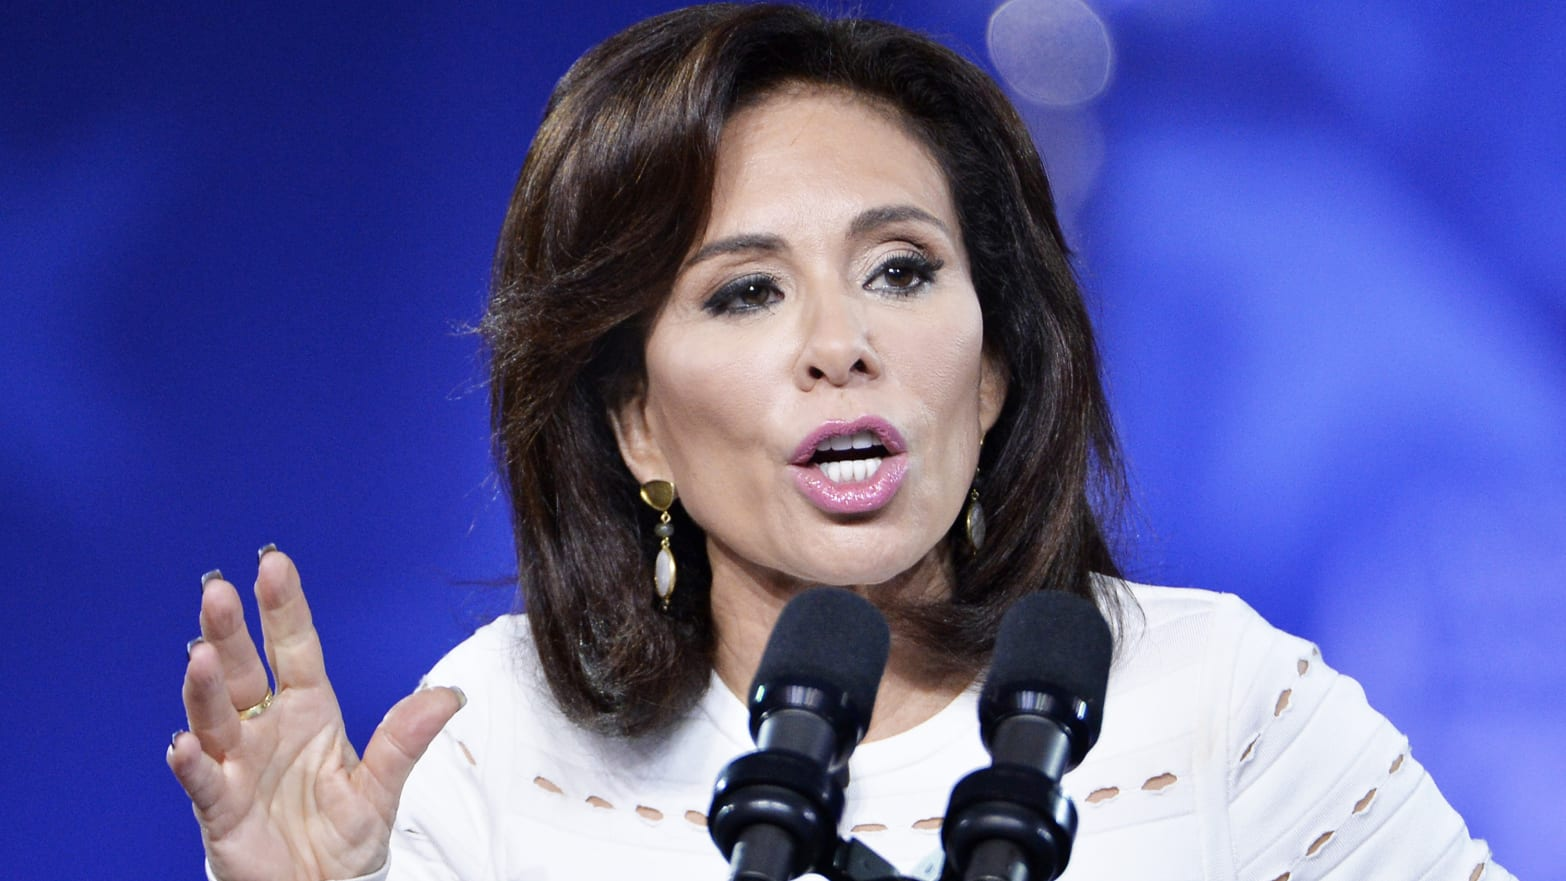 Judge Jeanine Pirro Stiffs Campaign Vendors Out of Nearly $600K